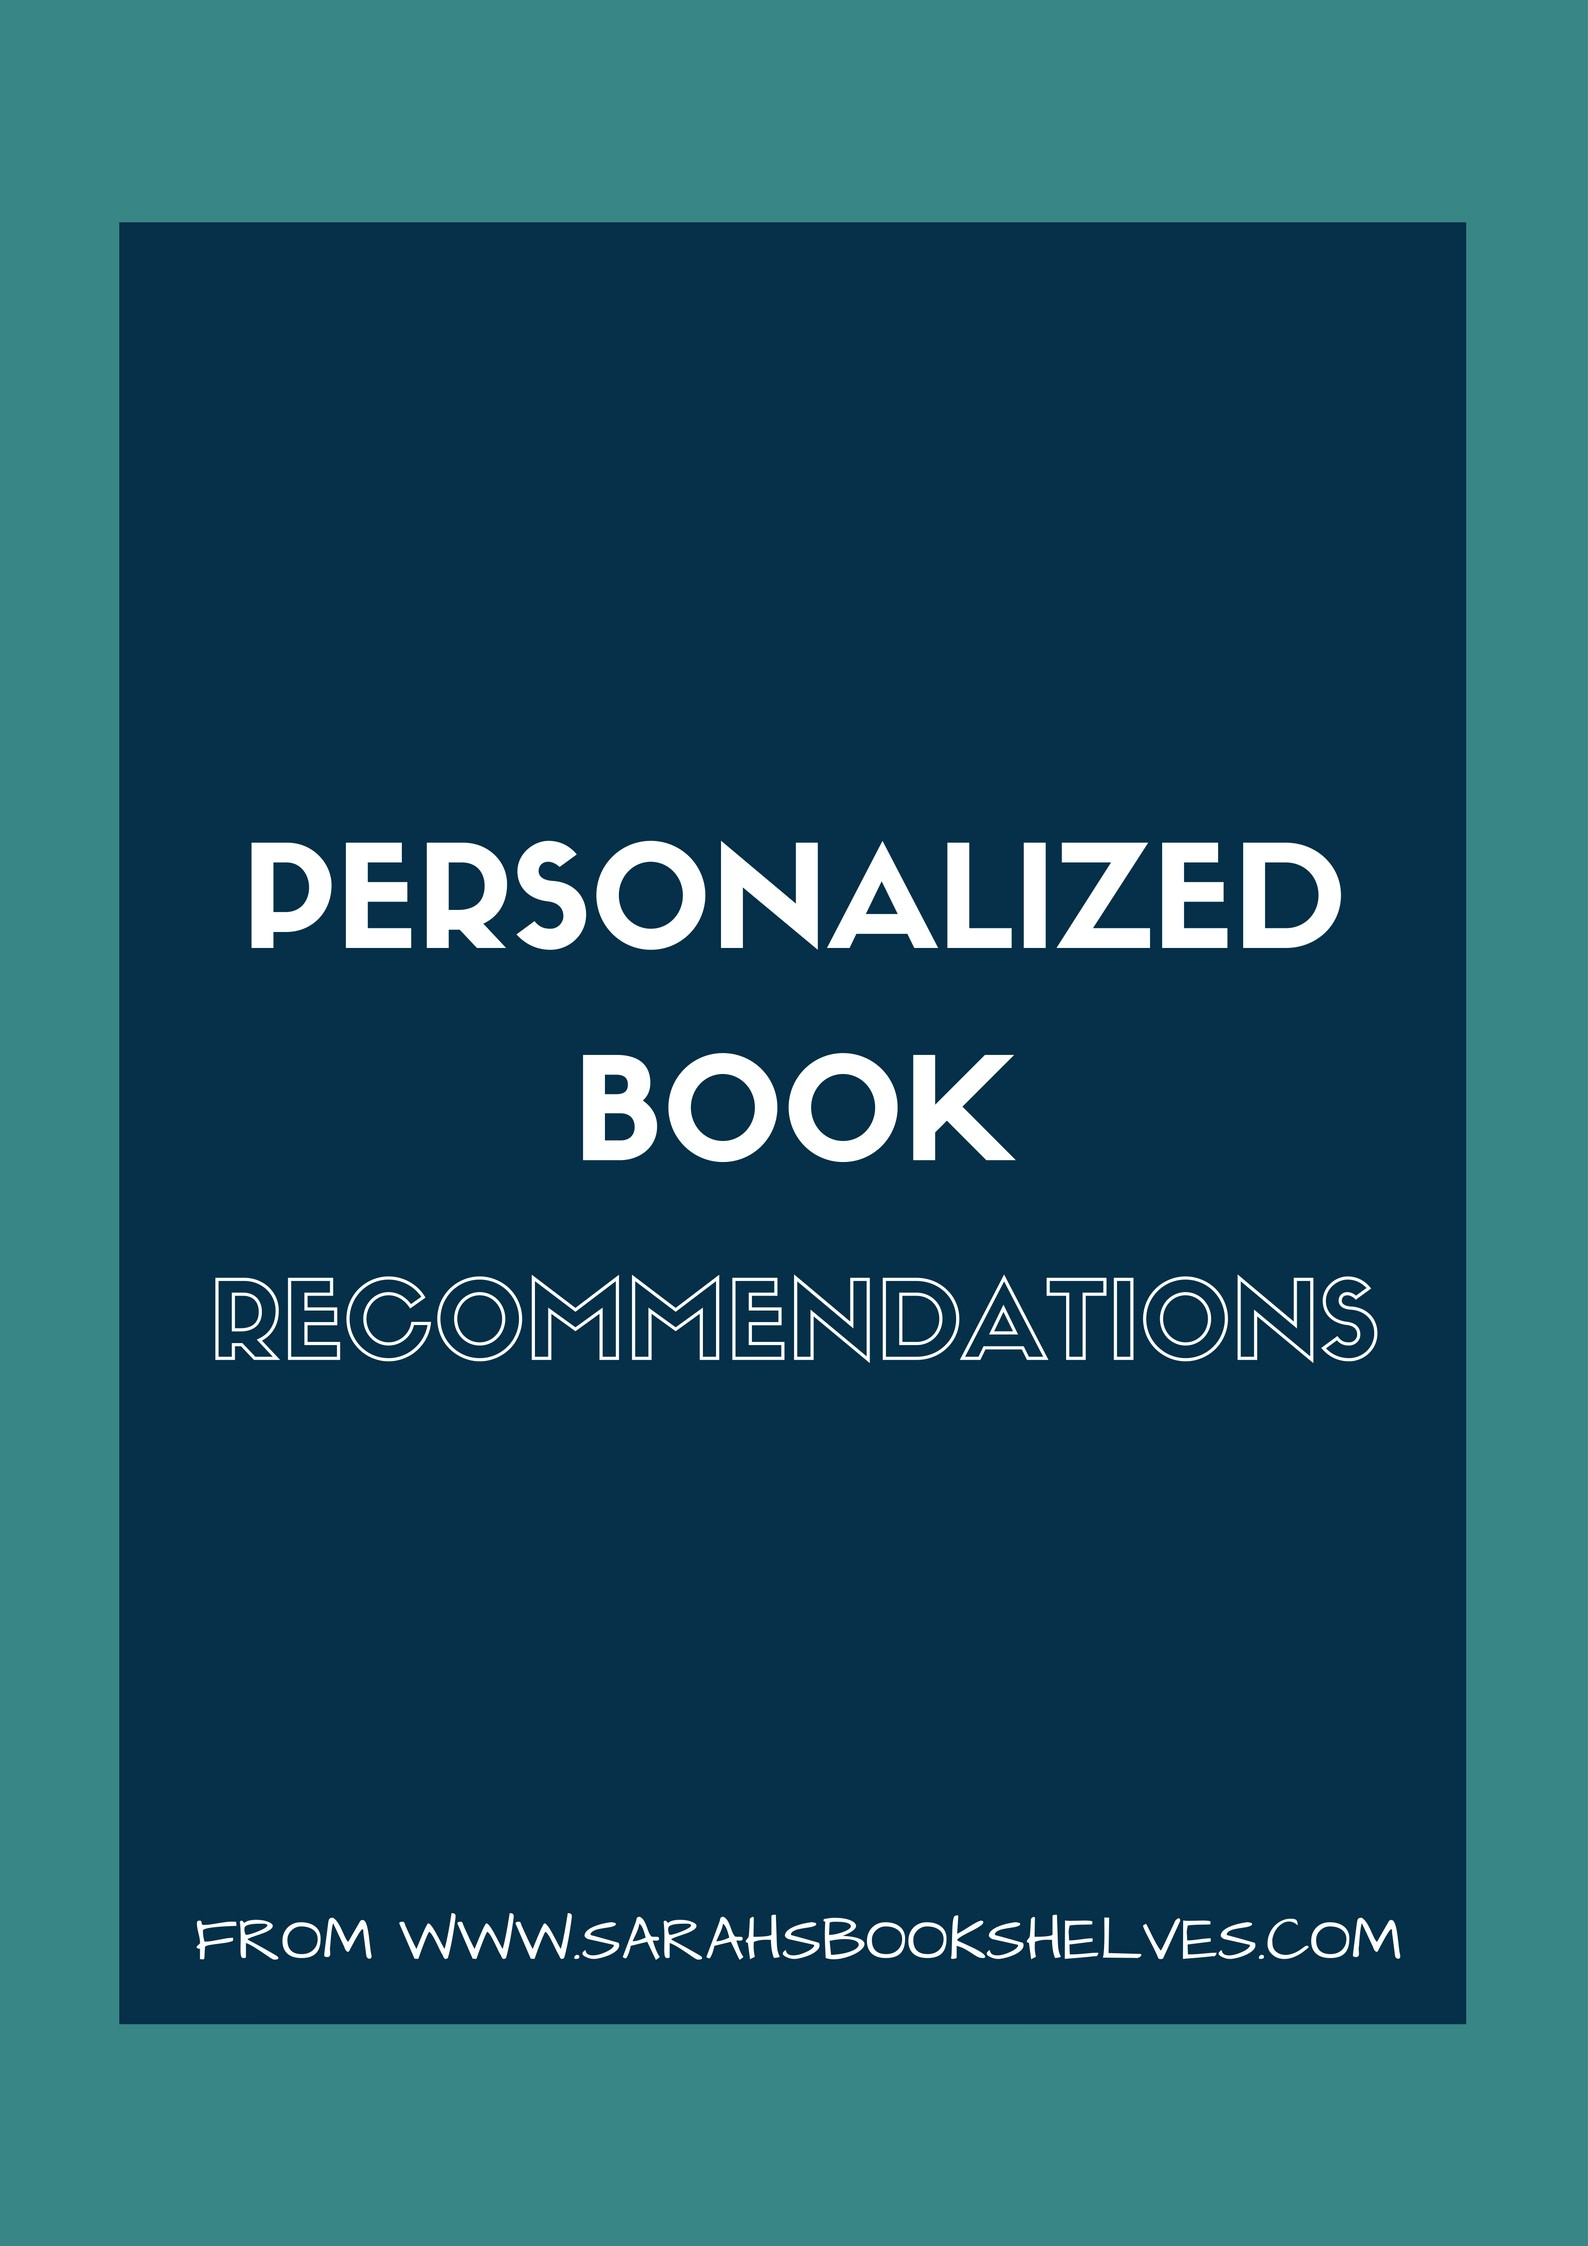 Get free personalized book recommendations for a limited time only!